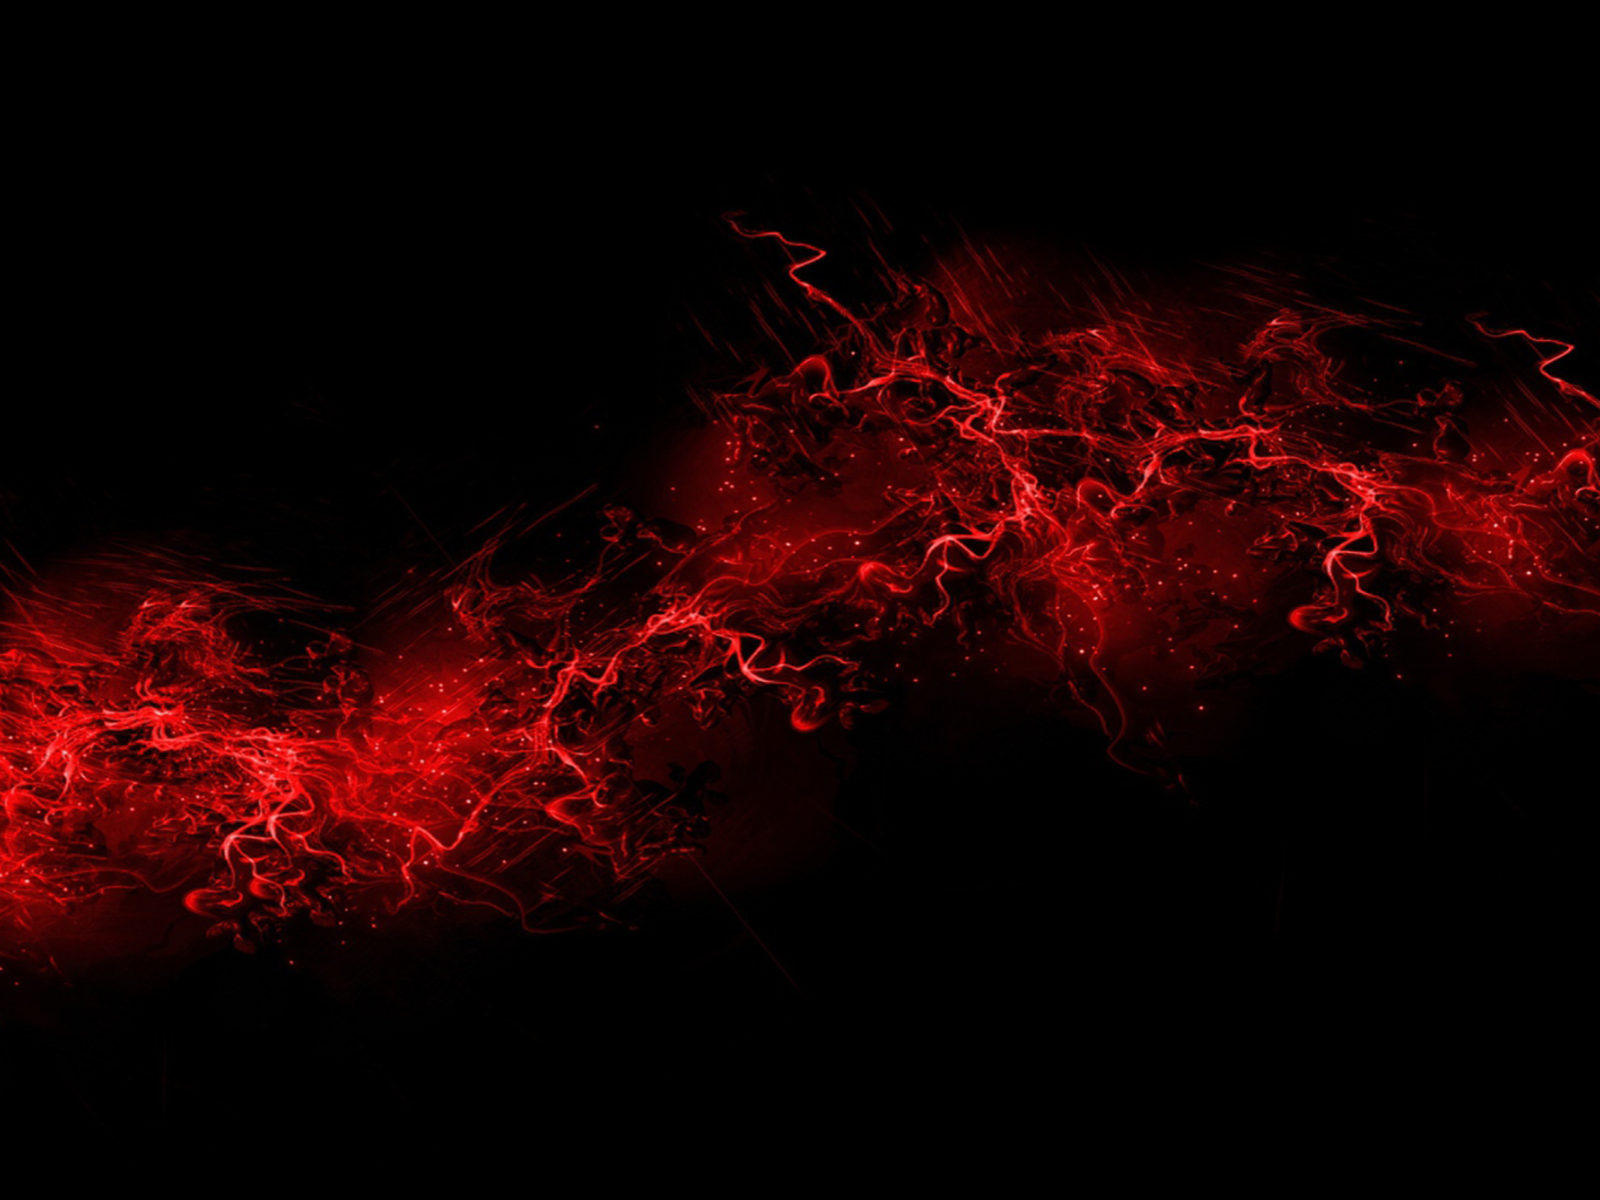 3d Wallpapers Of Angry Birds Black Background Red Color Paint Explosion Burst 746